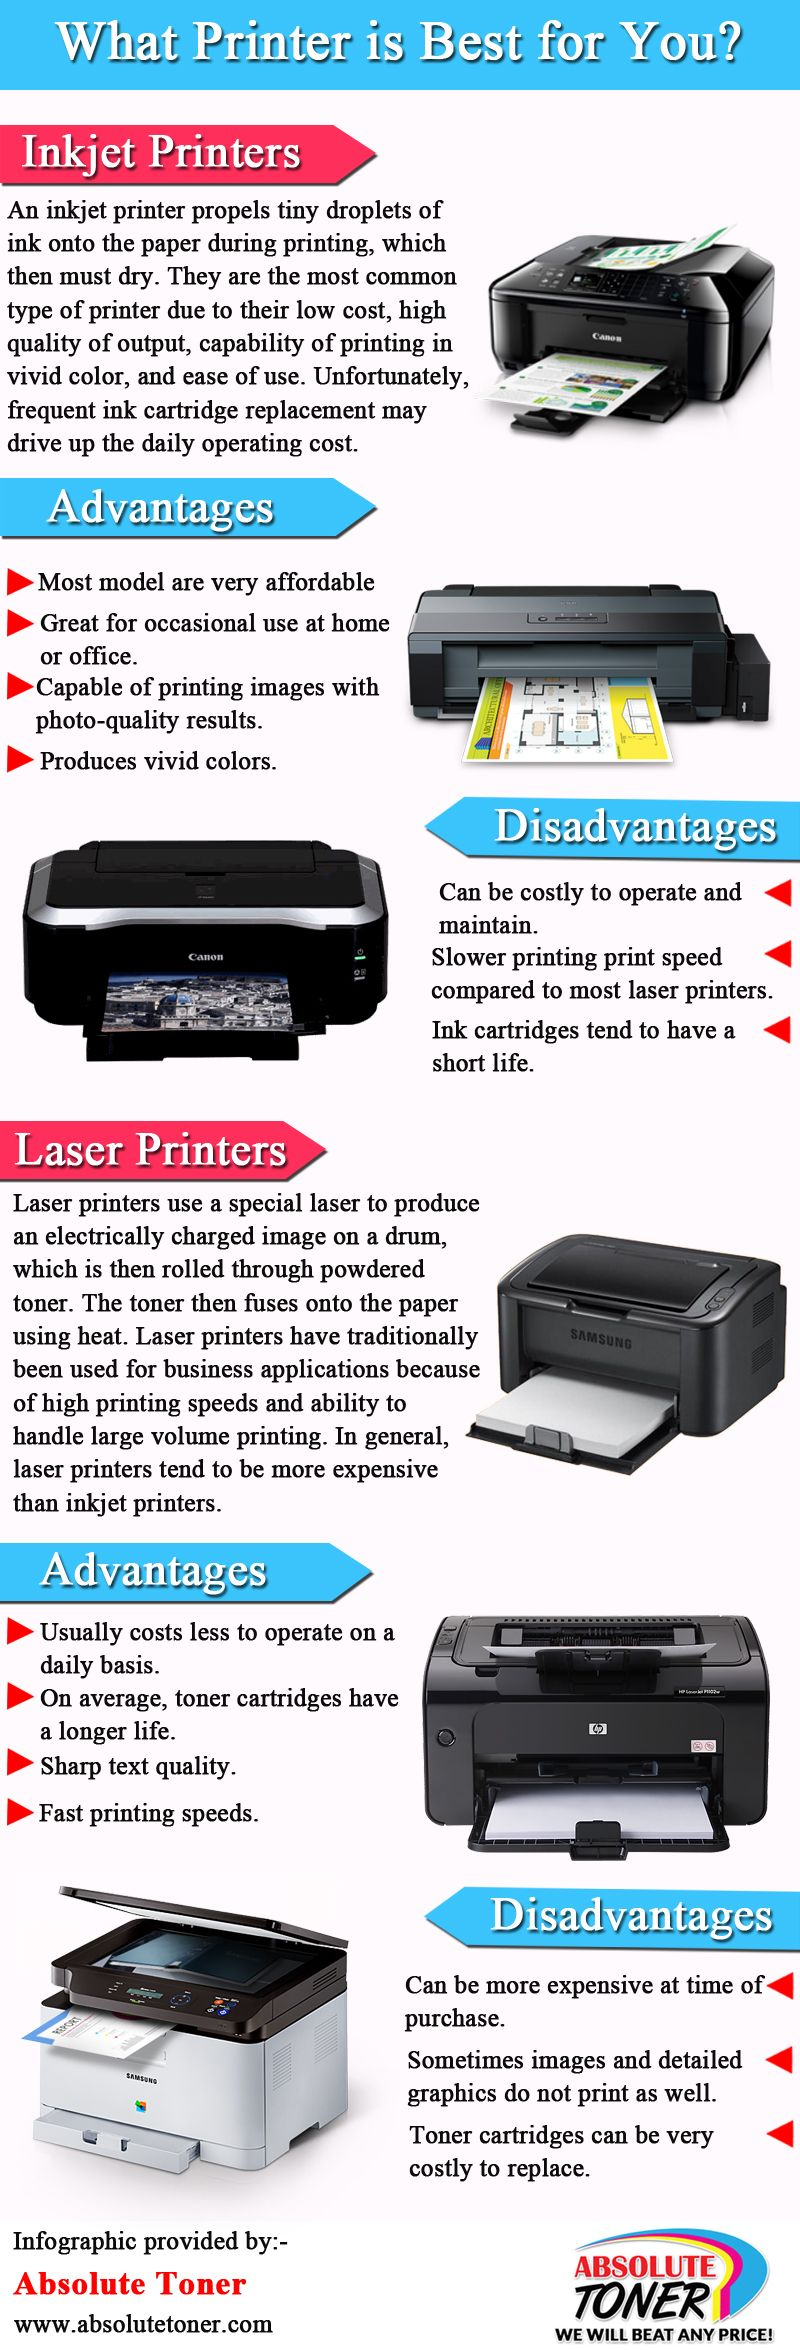 Buy Inkjet Printer Toner Cartridge Pin By Absolute Toner On What Printer Is Best For You Printer